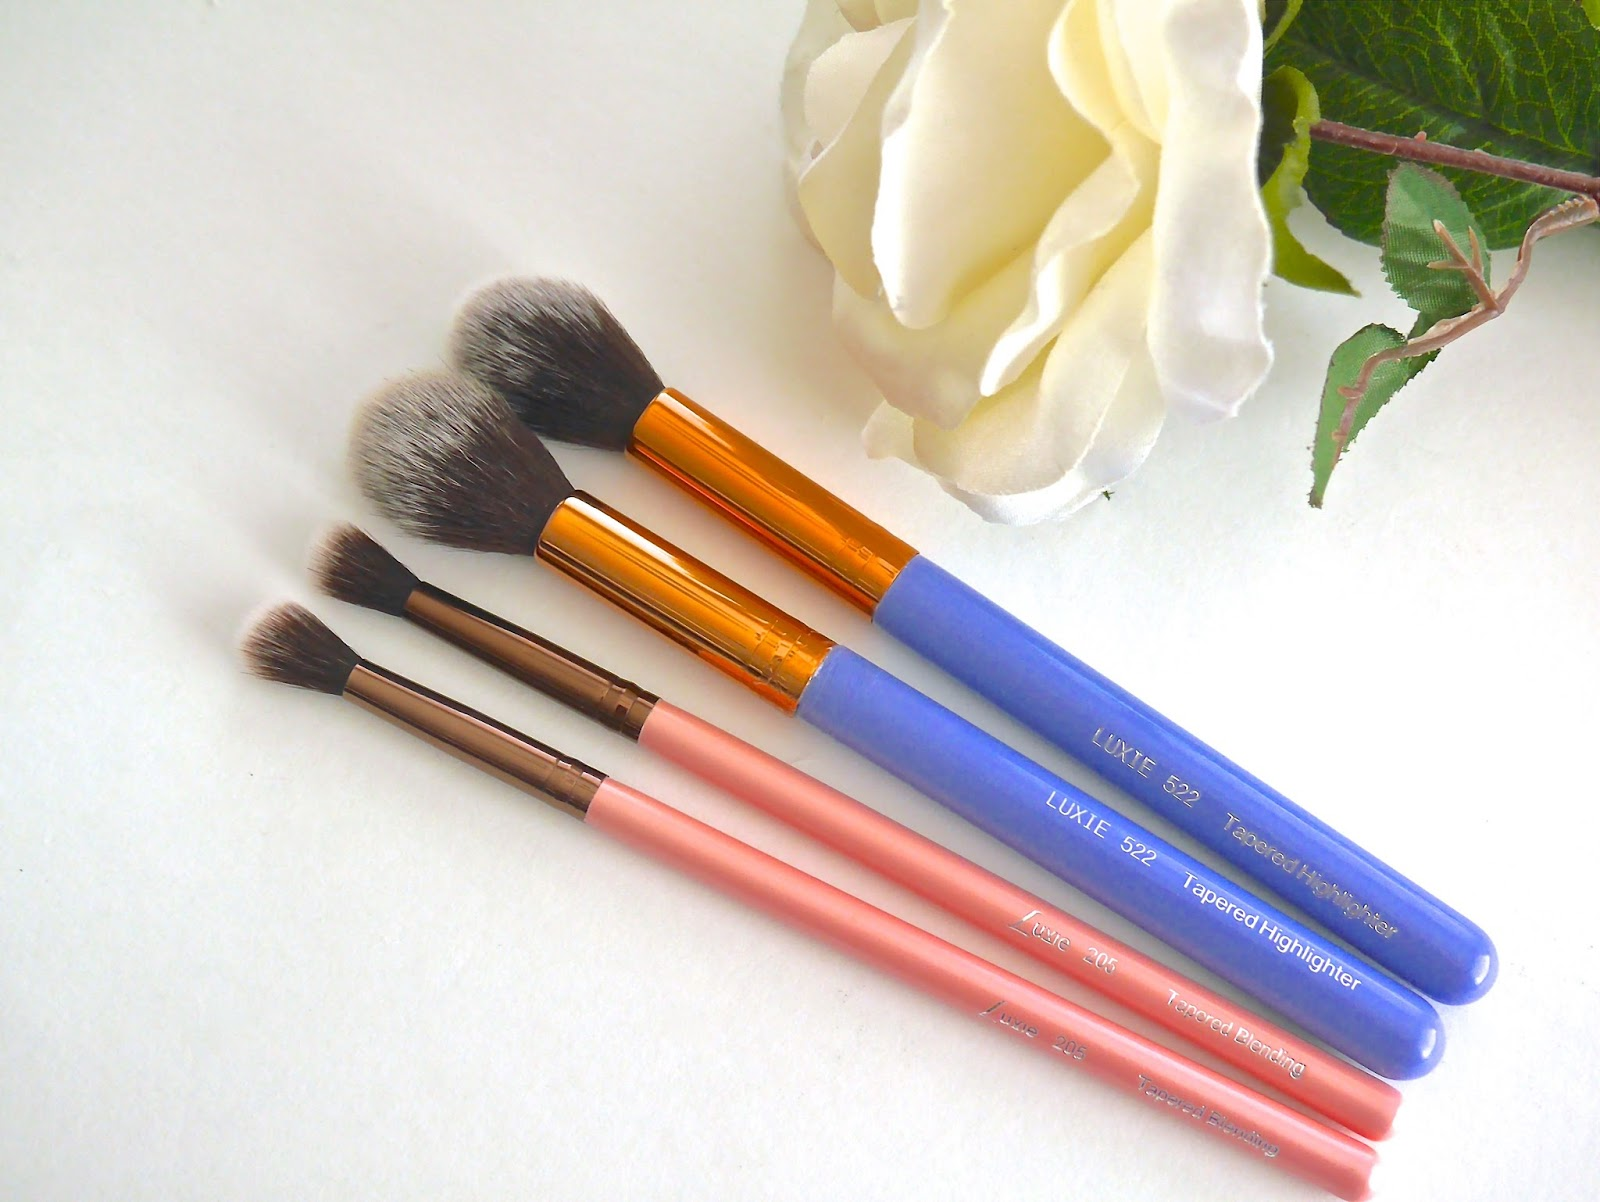 makeup brushes, cruelty free, vegan, eco-friendly, budget friendly